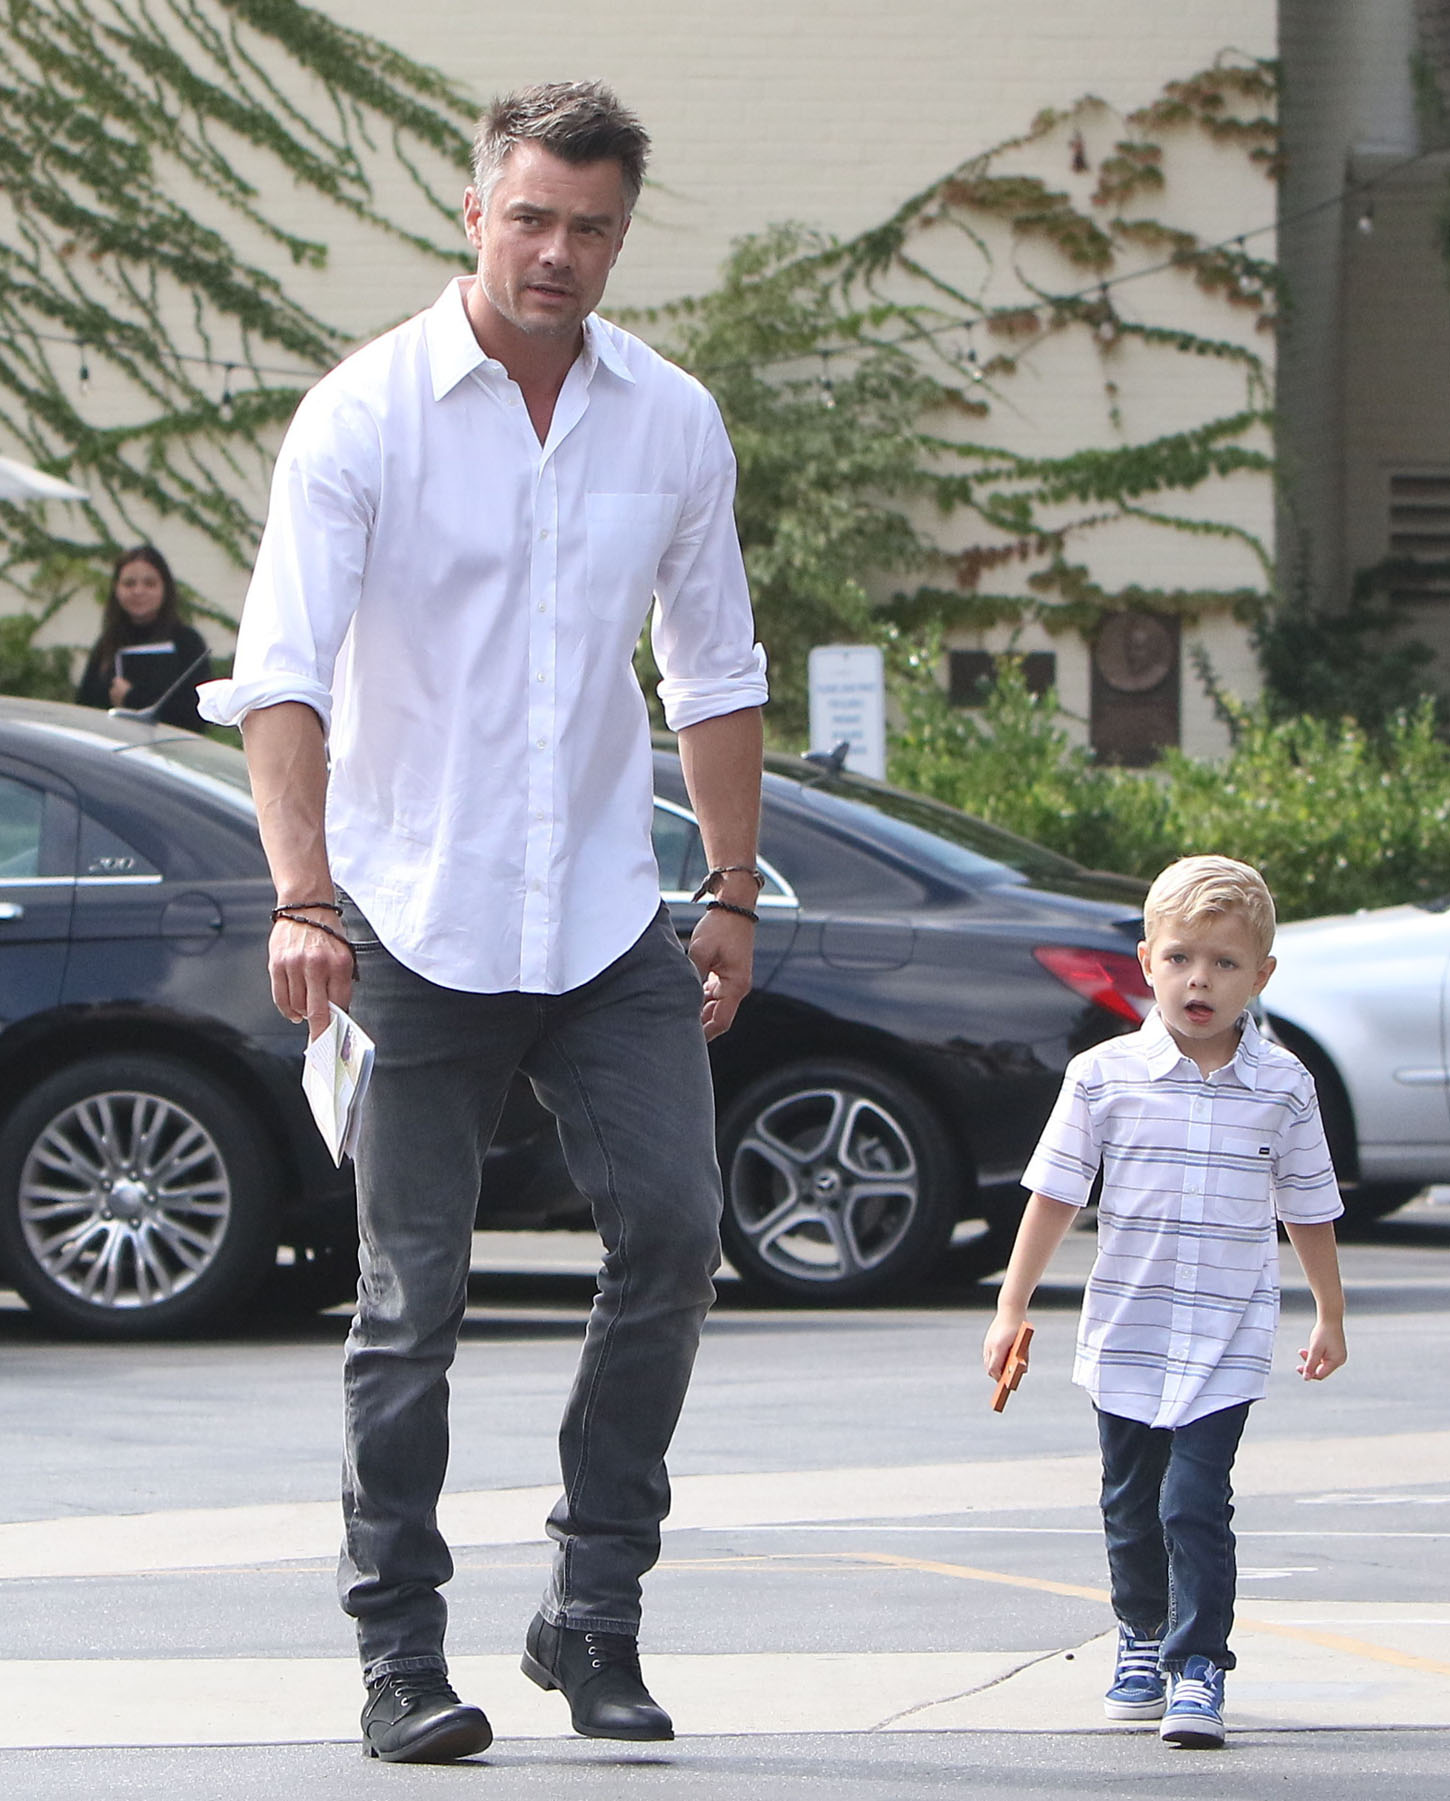 Dad Josh Duhamel carries son Axl into church services, early Sunday Morning.  Josh and Axl were both dressed nicely, in sharp button-up shirts.  Josh, was again without his ring, separated from mom, Fergie, who is attending Fashion Week in Paris.  October 1, 2017  X17online.com